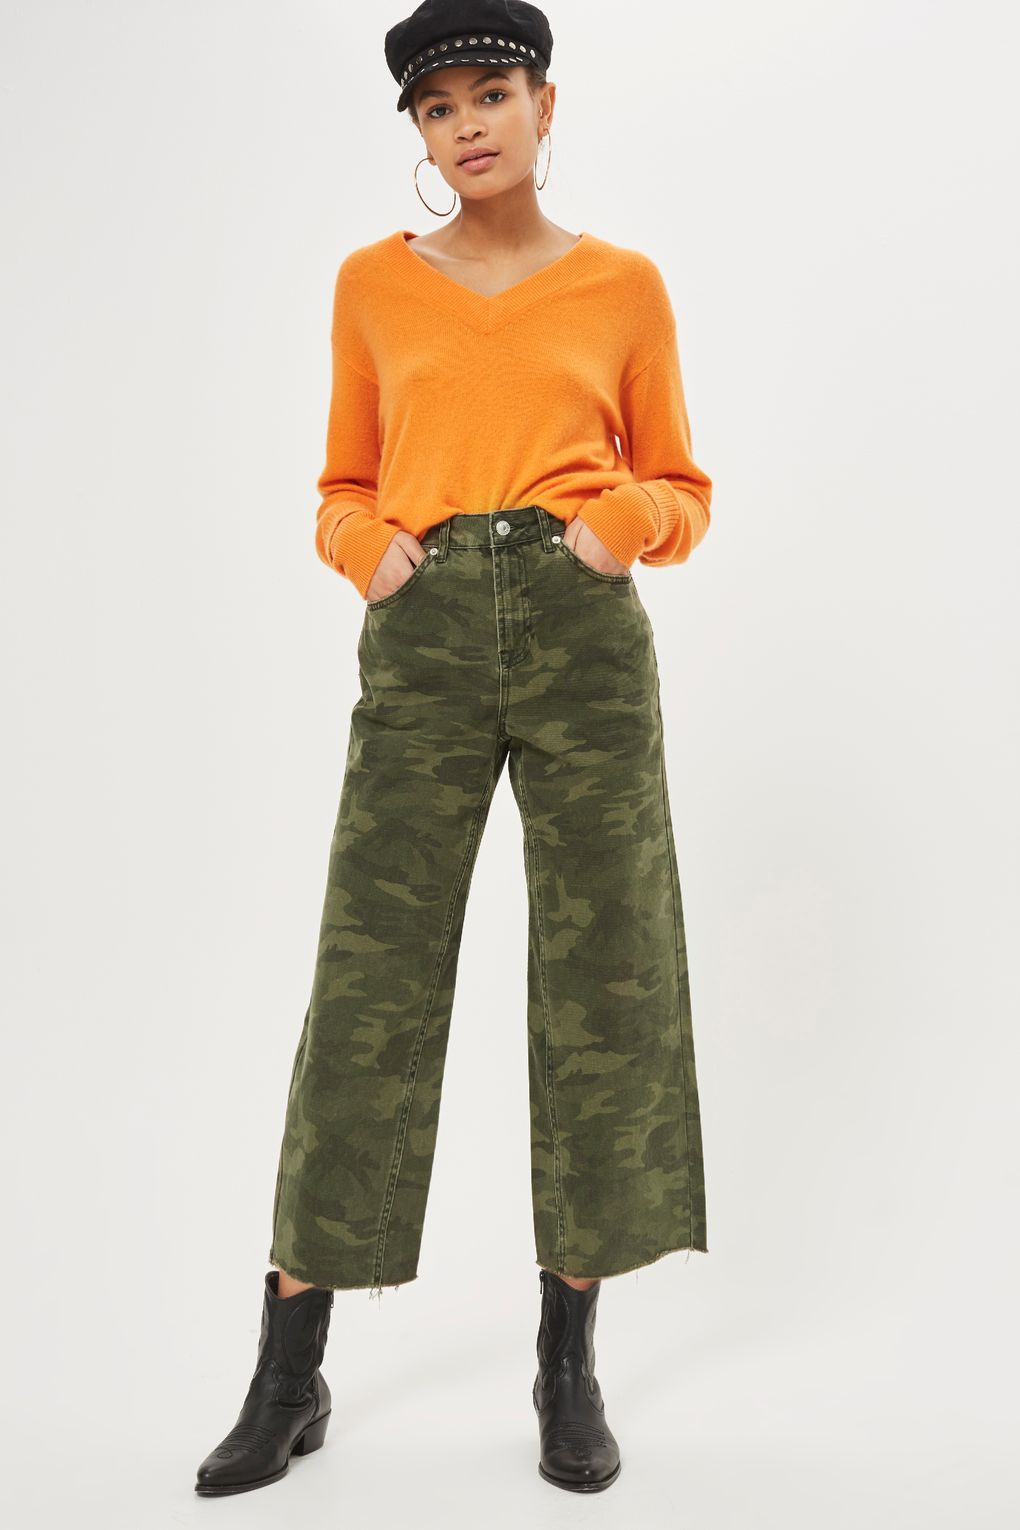 Topshop camo cropped jeans